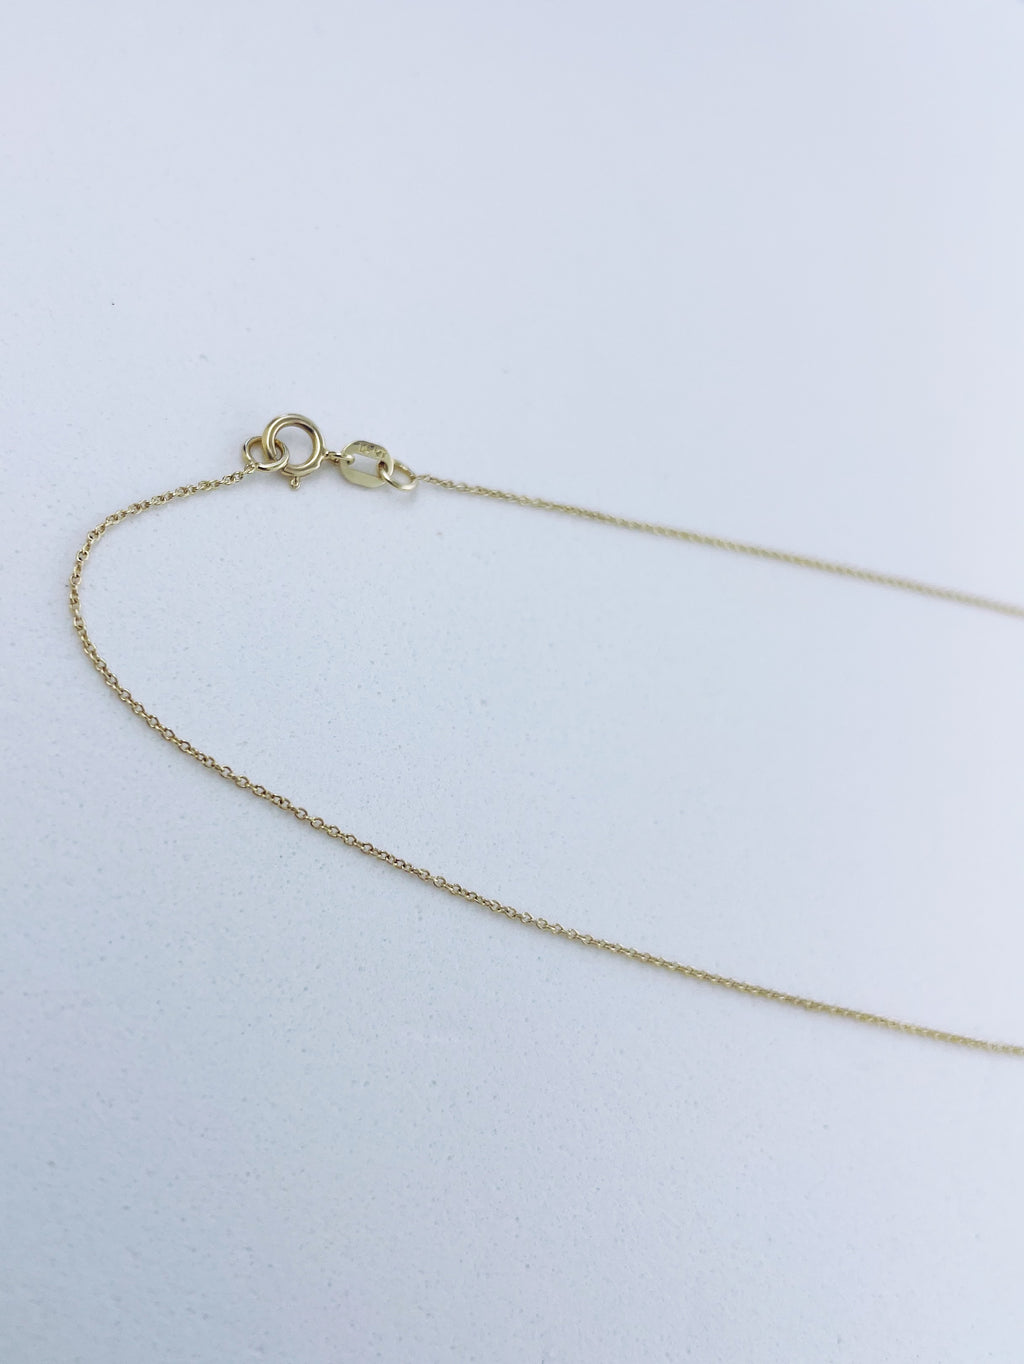 Nude Chain | 14k Gold | 20 inch